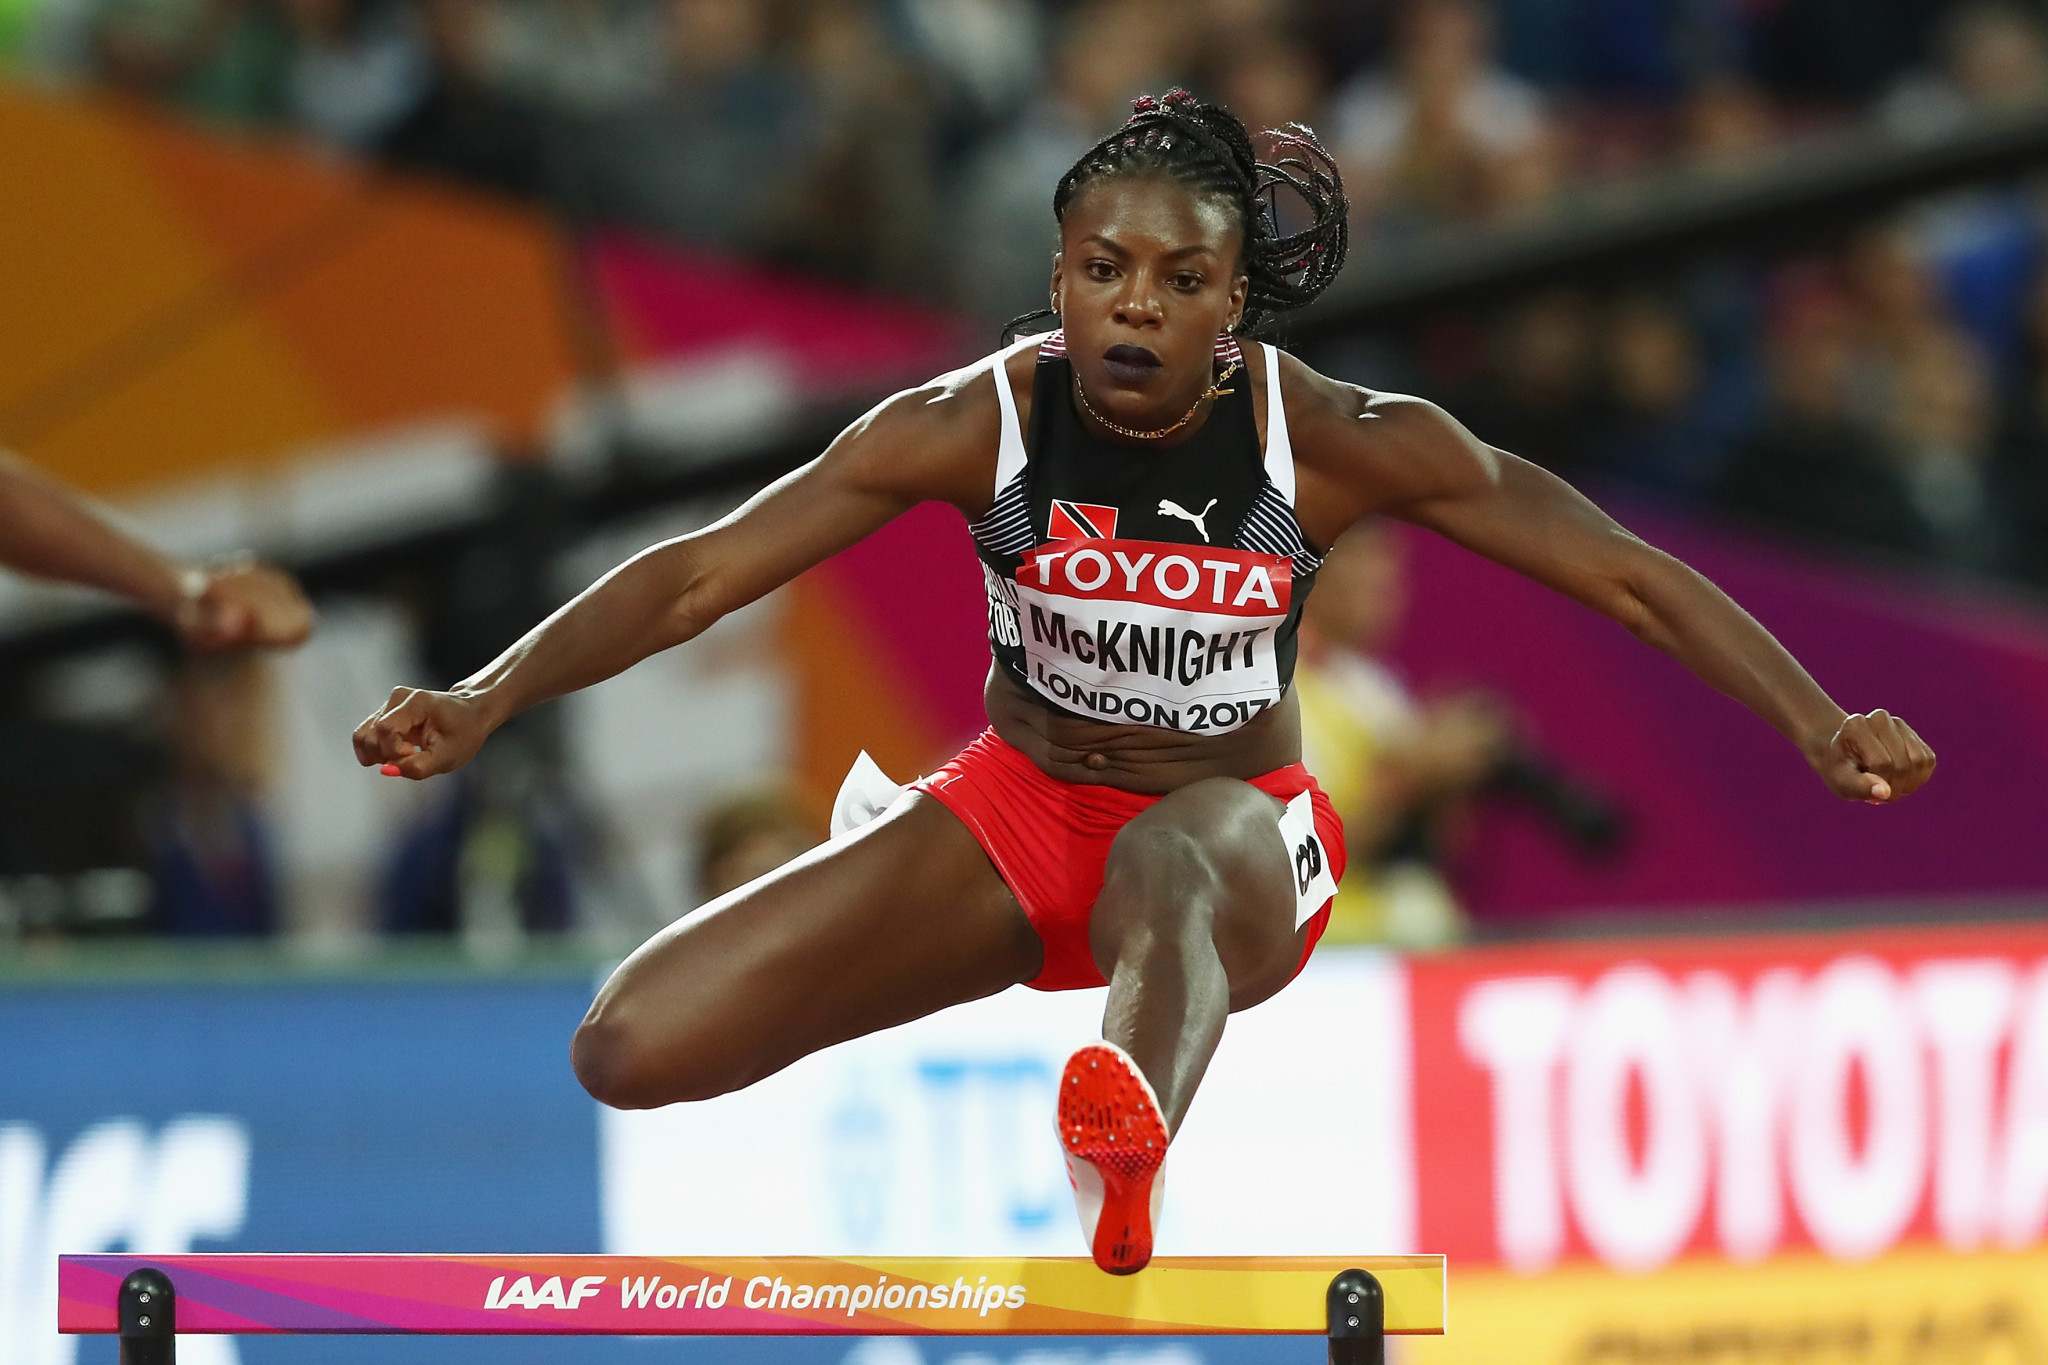 Three members of Trinidad and Tobago Tokyo 2020 team in quarantine after testing positive for COVID-19